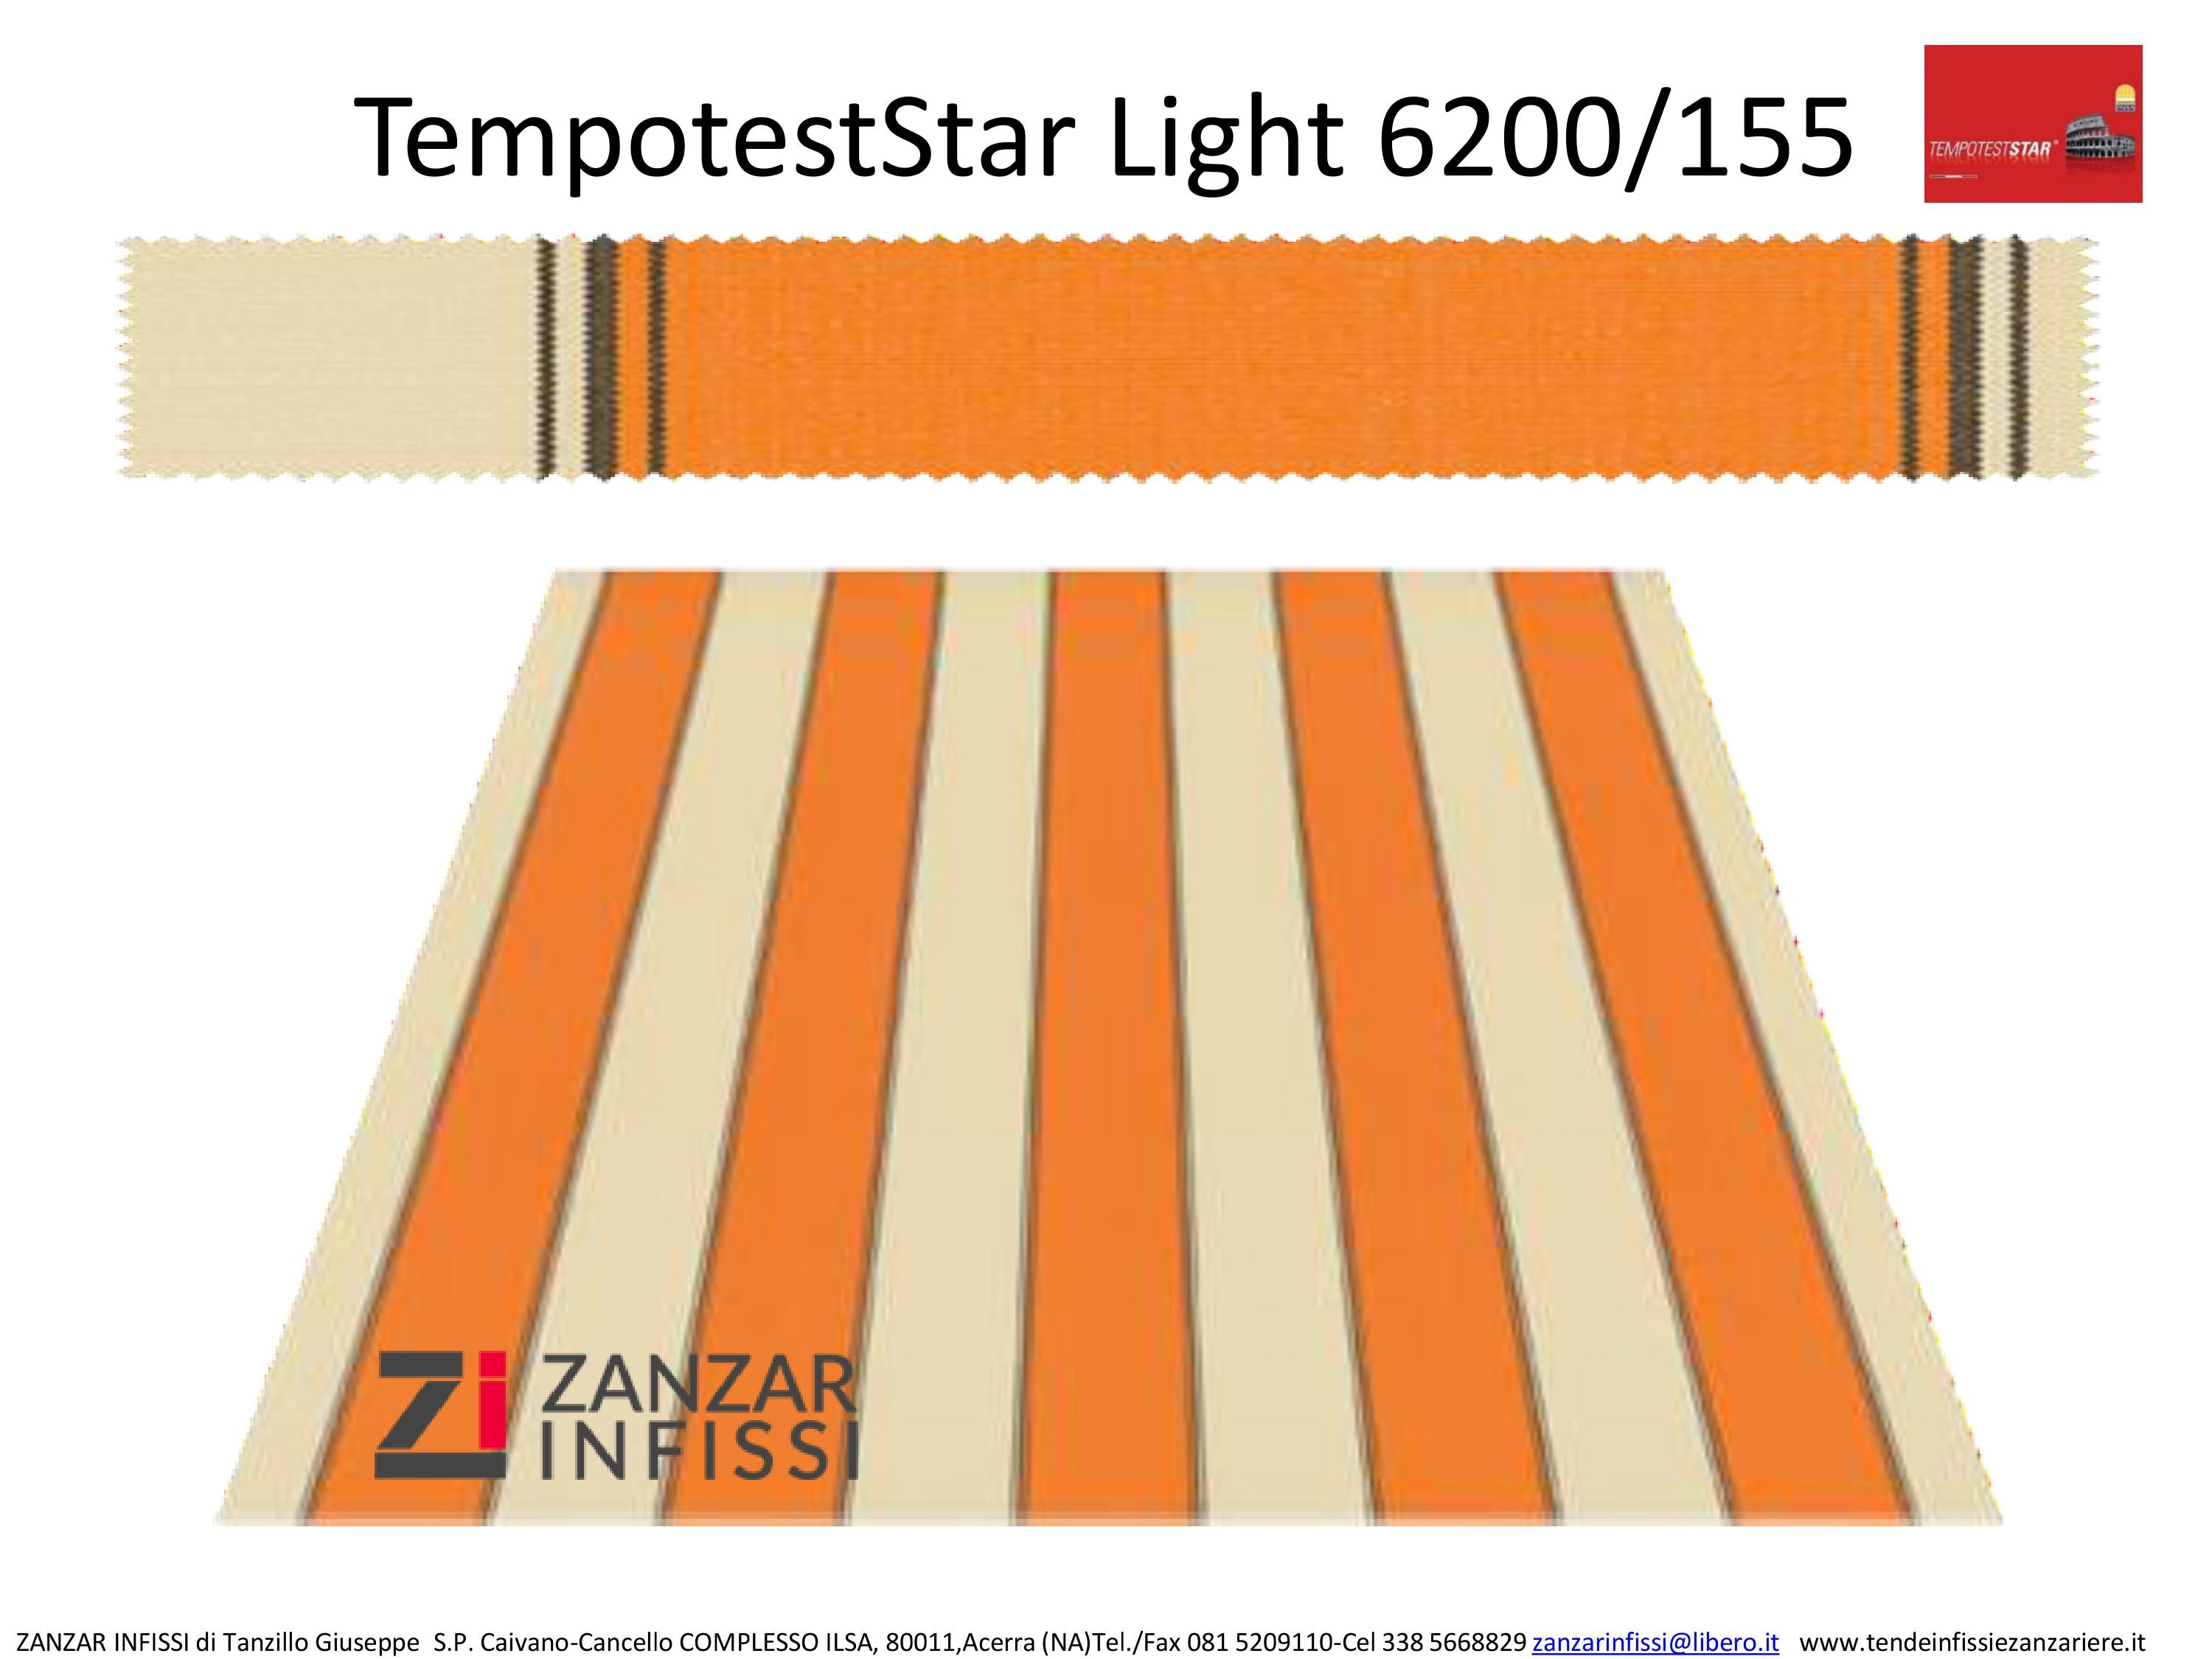 Tempotest star light 6200/155